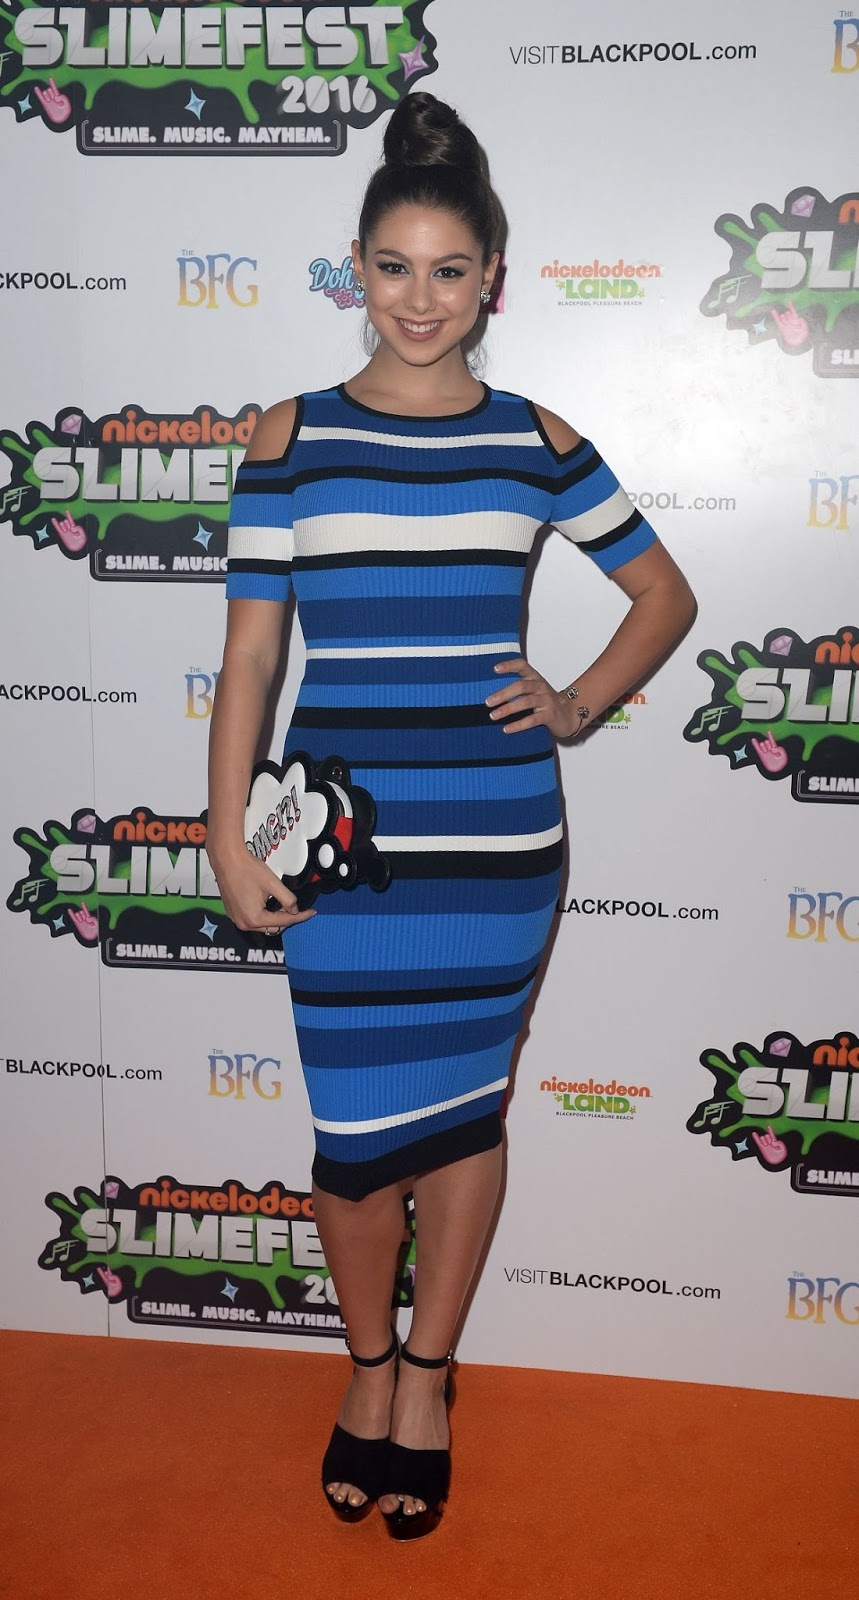 Kira Kosarin At First UK Nickelodeon Slimefest In Blackpool